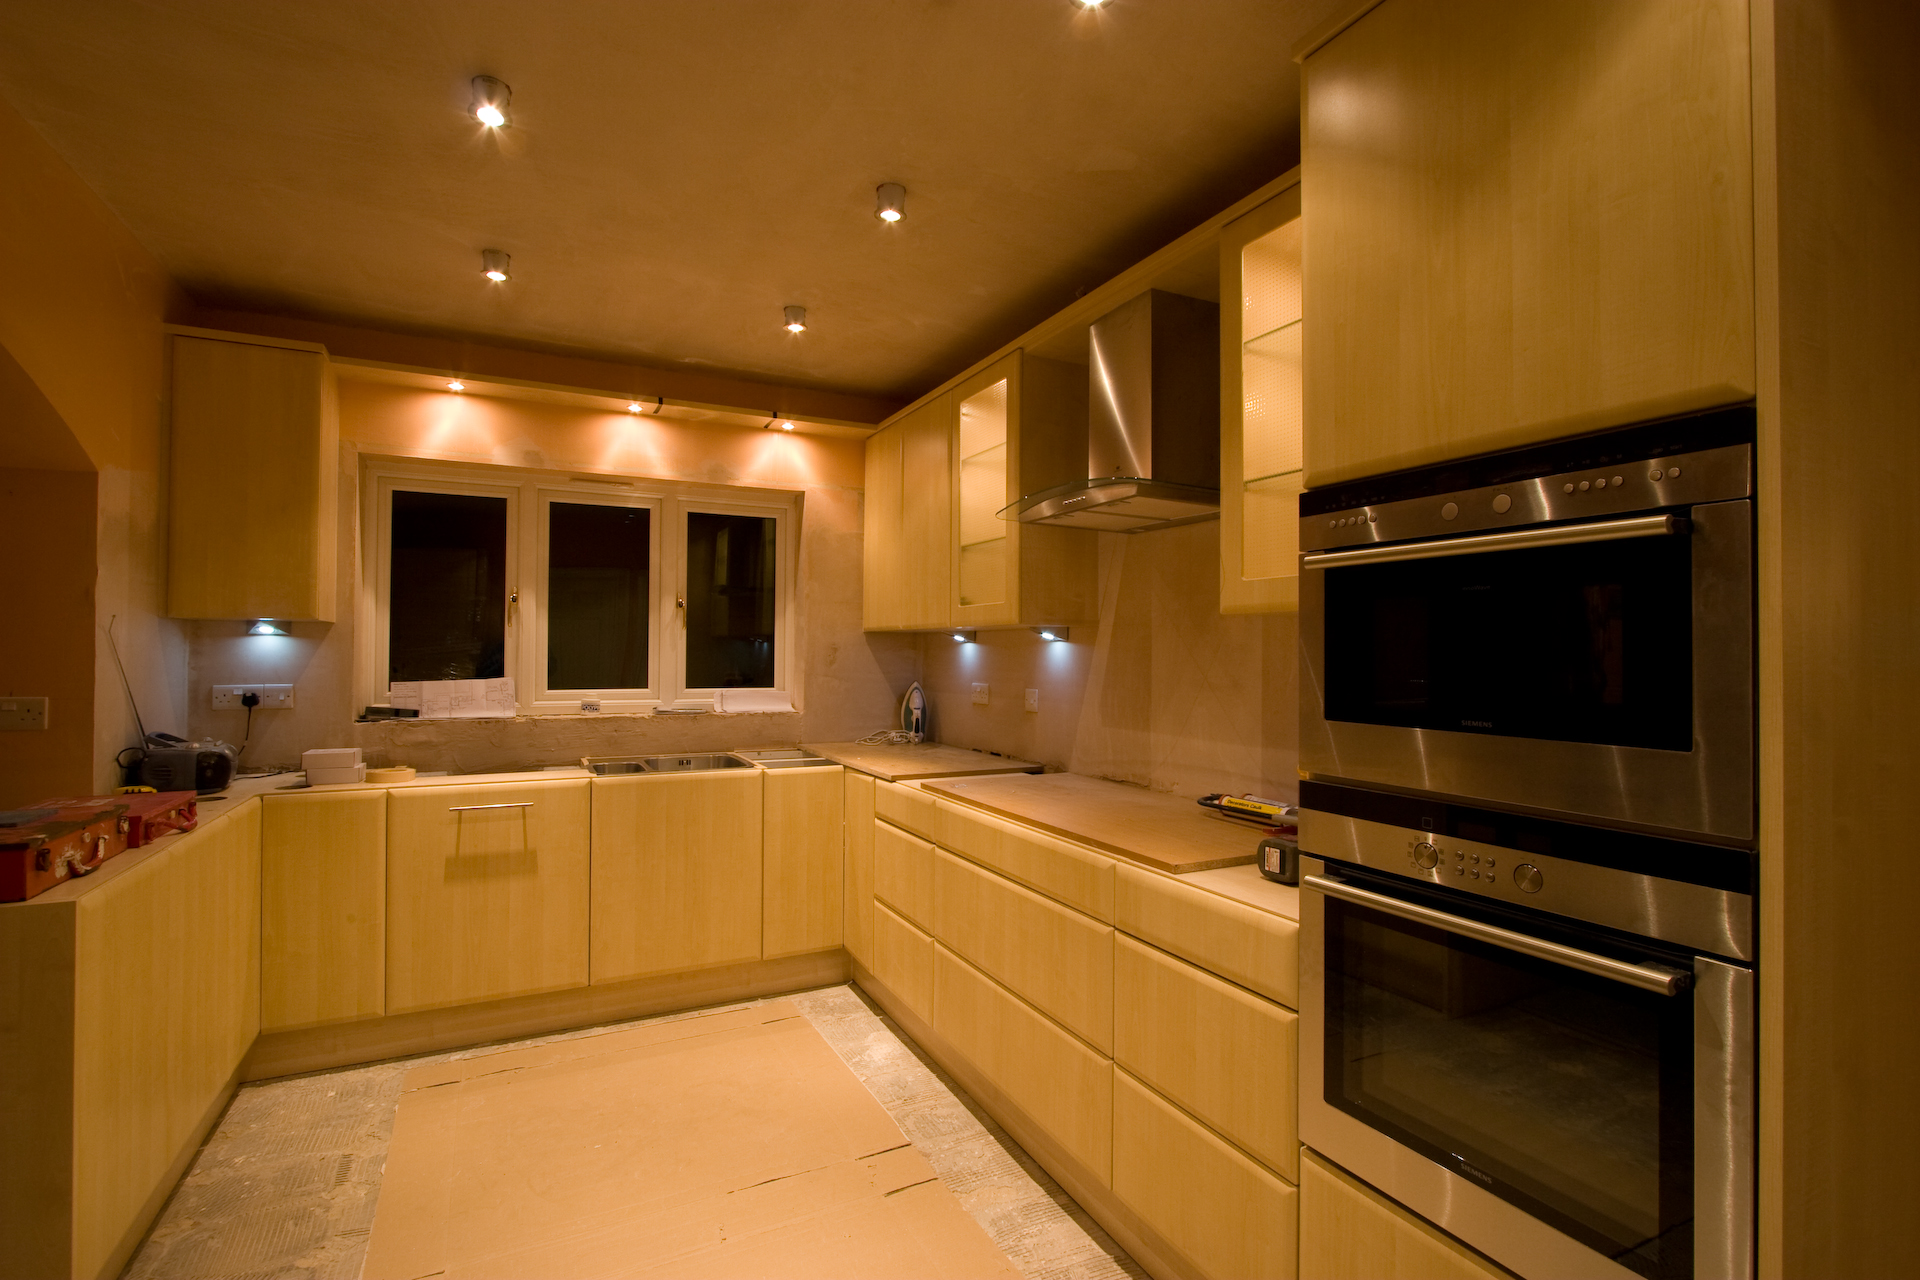 Where To Get A Kitchen From Of New Kitchen Robert 39 S Ramblings